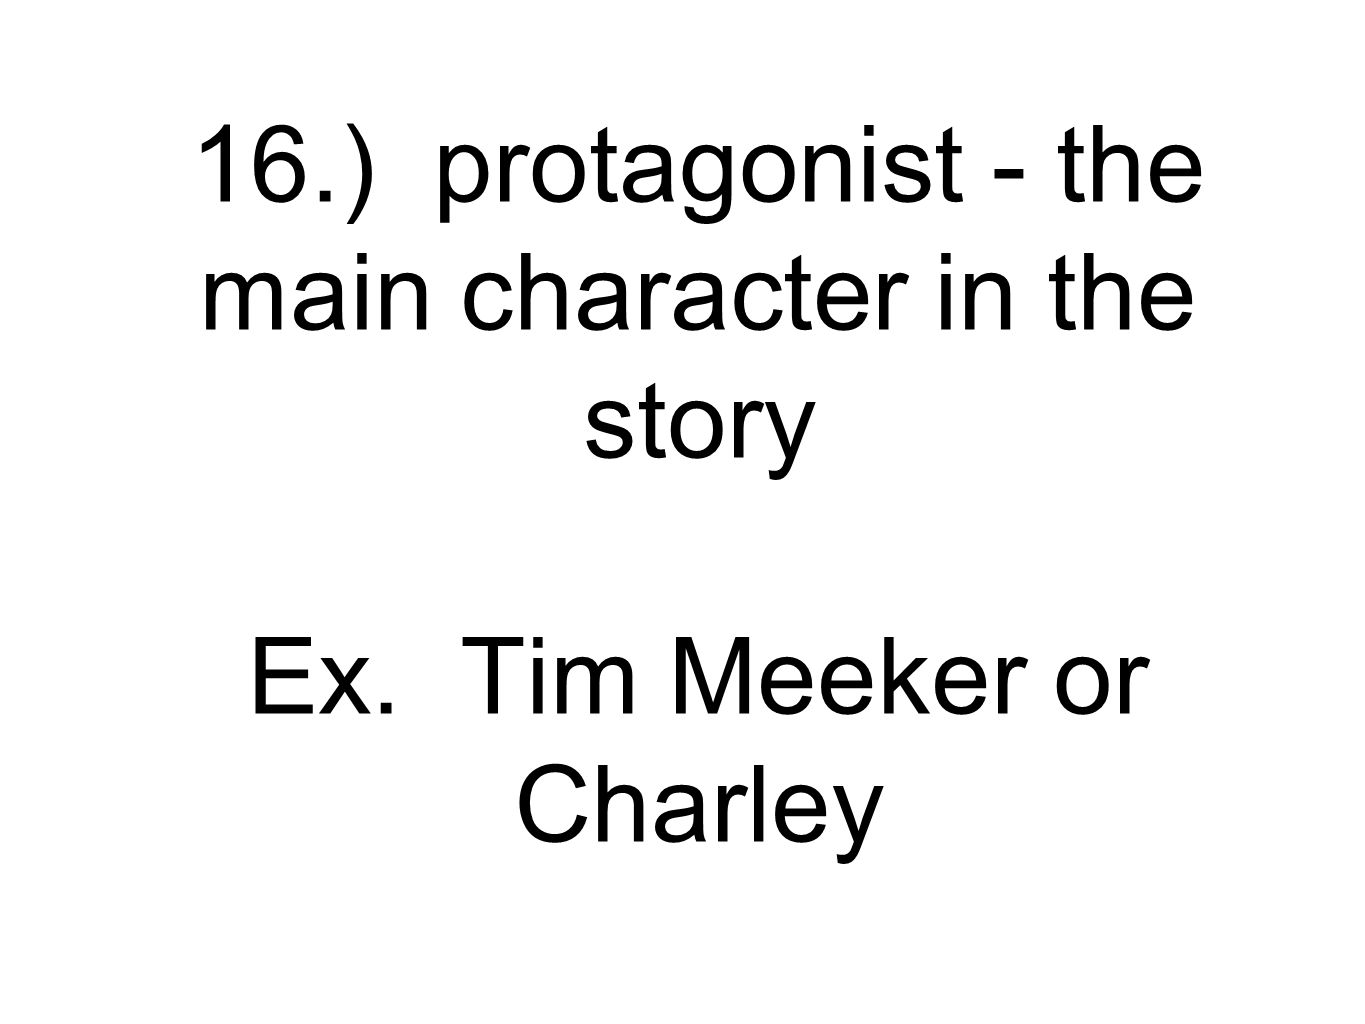 16.) protagonist - the main character in the story Ex. Tim Meeker or Charley